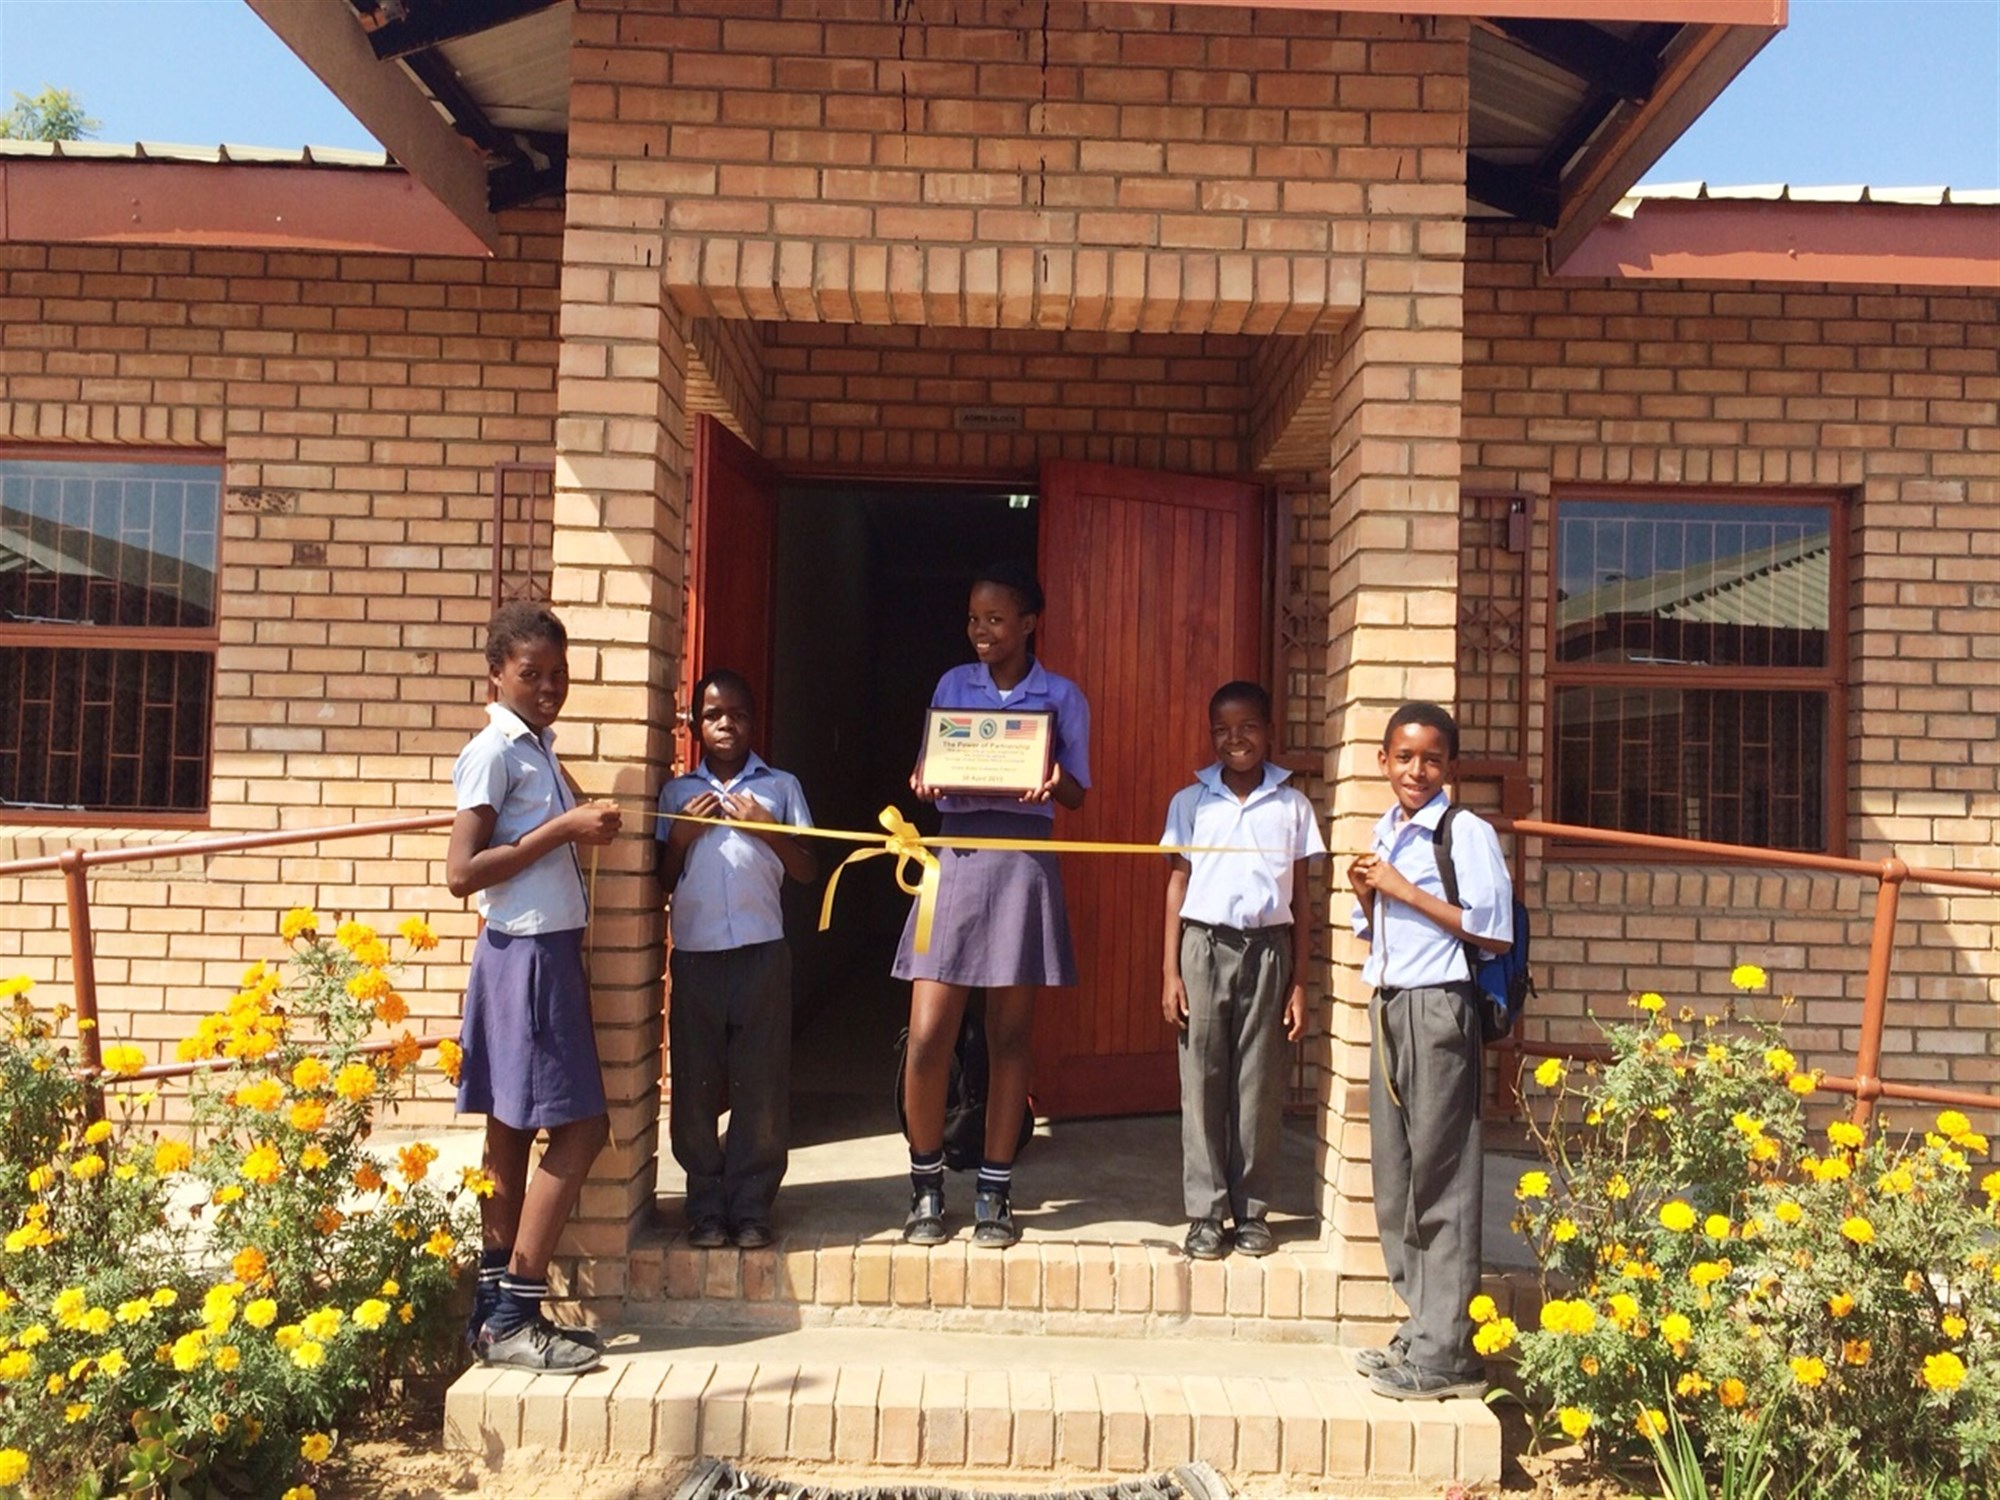 The new classrooms at the Lesodi-Motlana primary school house 230 students in grades five through seven. An administrative building and hygienic latrines were also constructed.